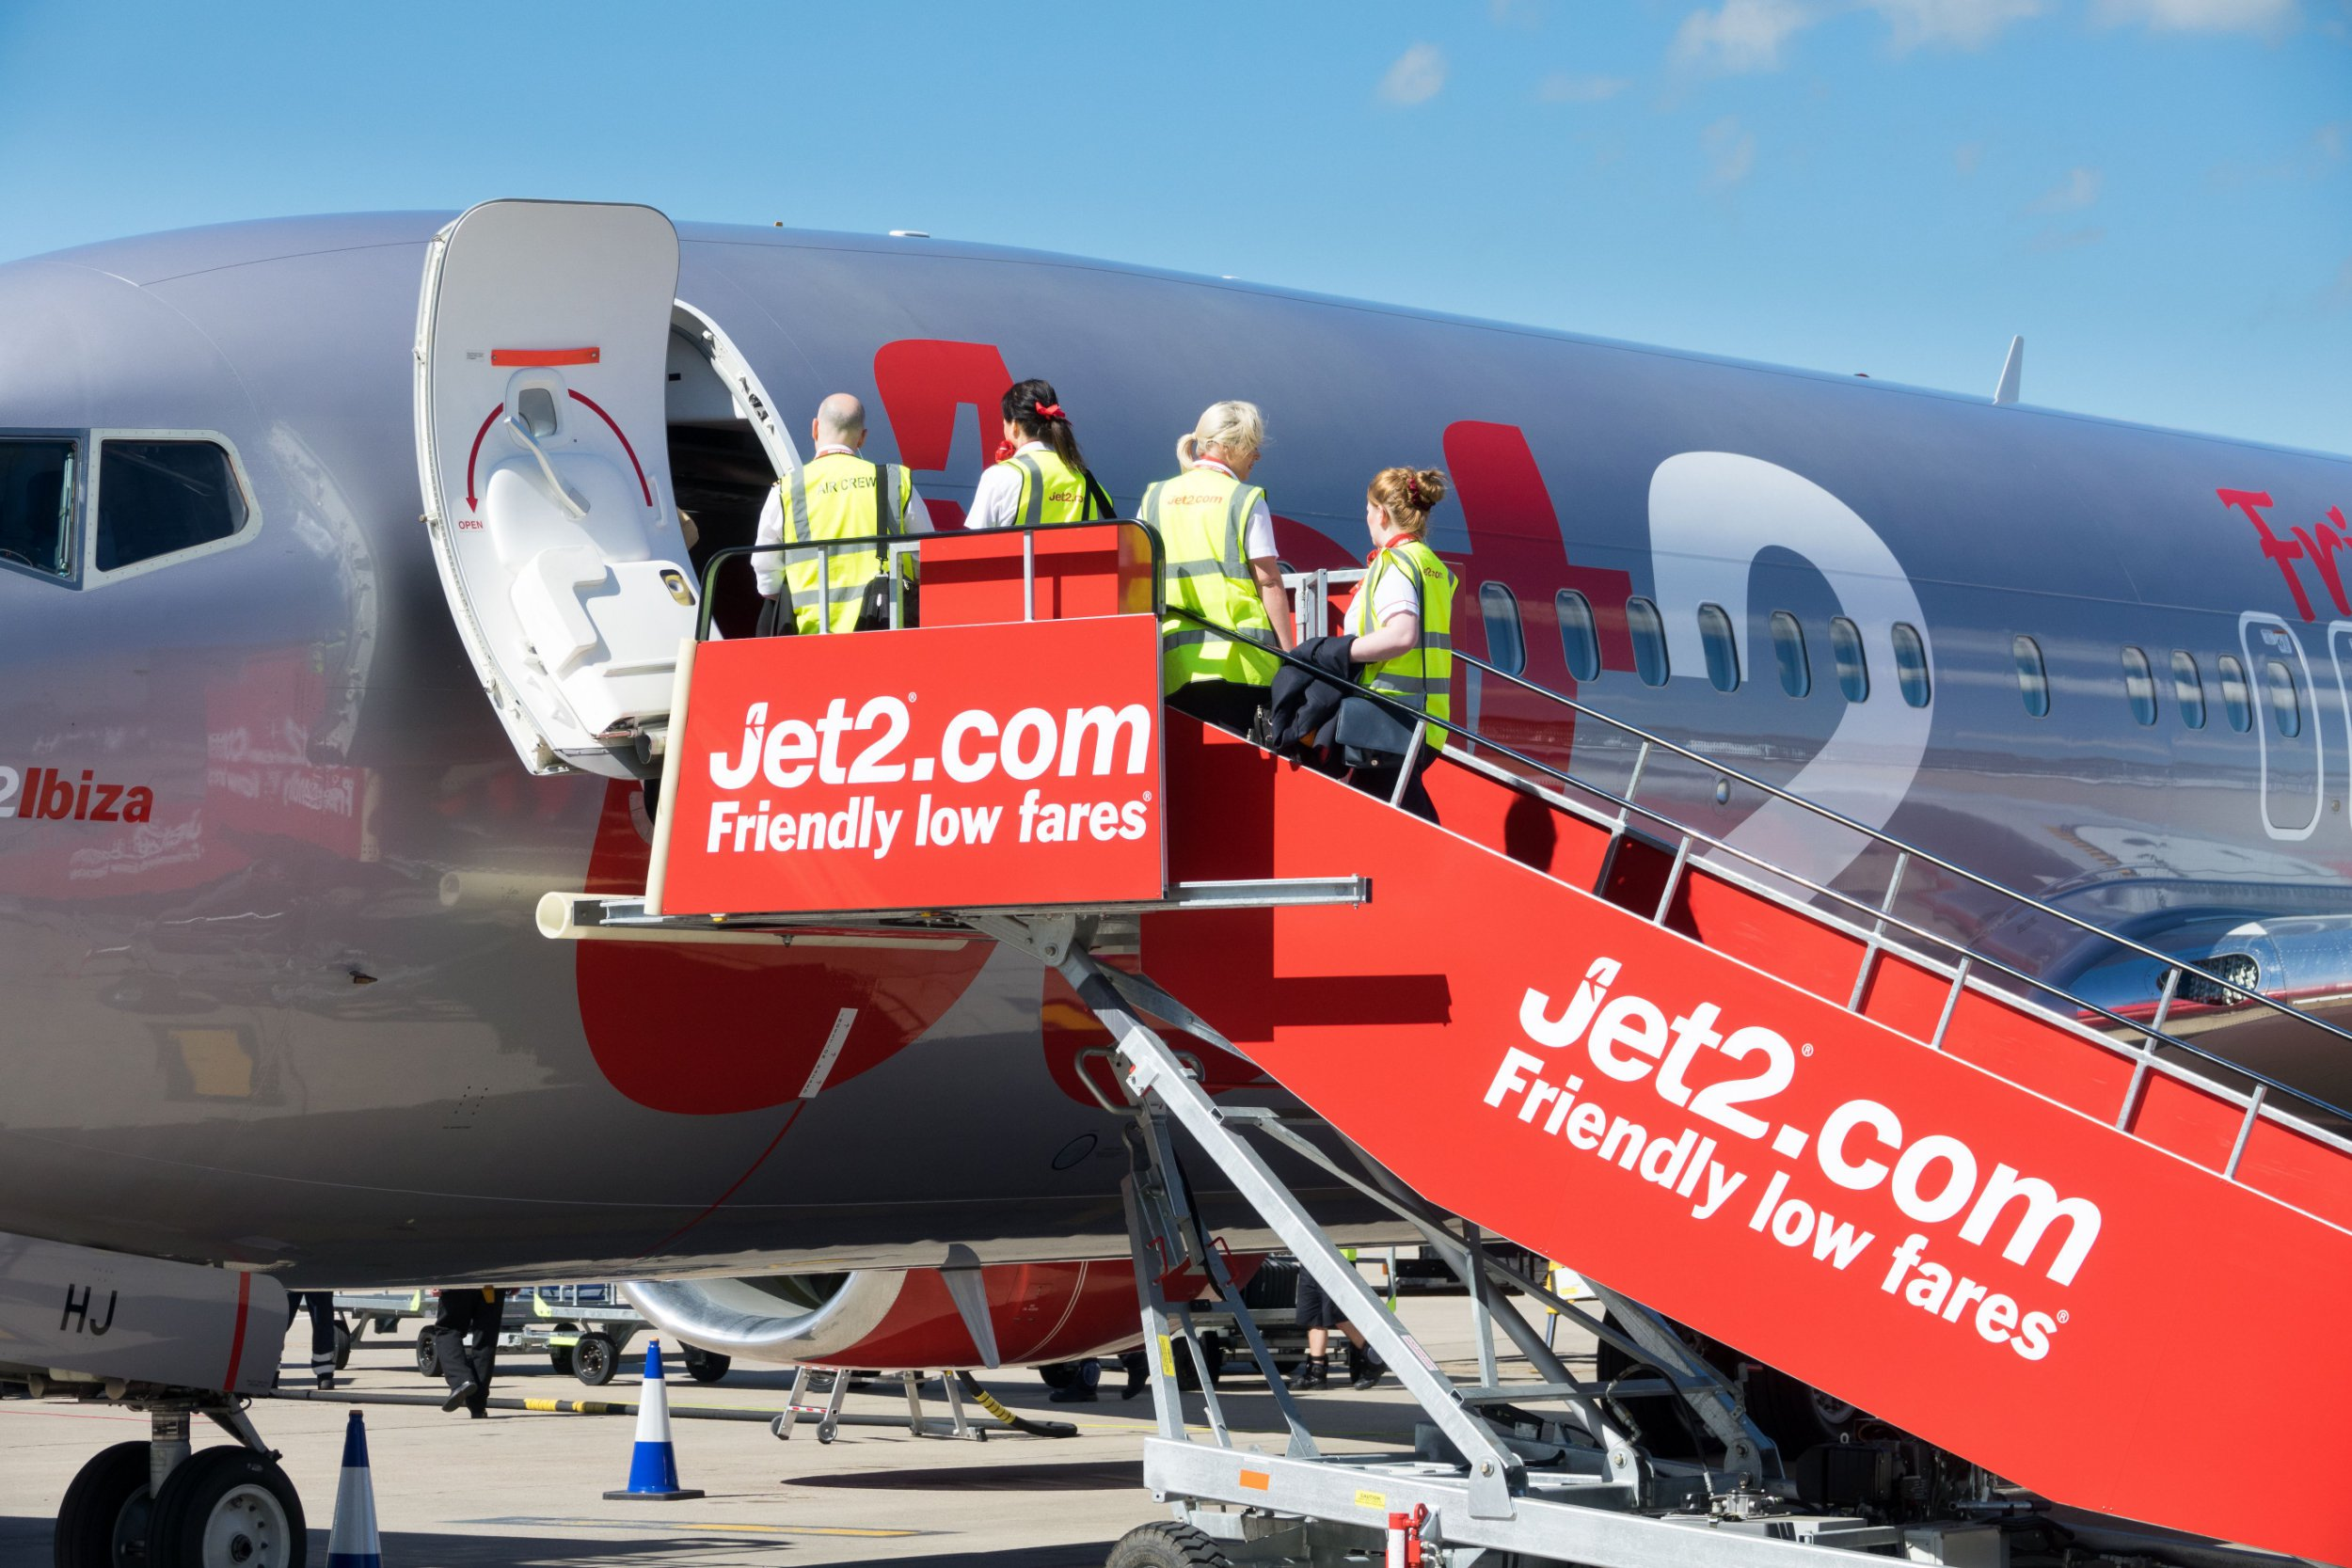 Mandatory Credit: Photo by Geoff Robinson Photography/REX/Shutterstock (8961148o) Jet2 plane Jet2 plane, UK - May 2017 Dart Group which owns Jet2 holidays announced its final year results today. A strong performance by its Jet2 holiday business has led to a major increase in revenues at Dart Group, but investment in new operating bases and foreign exchange revaluation losses led to a drop in profits. Revenue at Dart Group, the holding company for Jet2, has grown by 23 per cent to ?1.73bn in the year to 31 March 2017. Jet2.com flew a total of 7.1 million passengers compared to its 2016 total of 6.07 million, to and from popular sun, city and ski destinations during the year, an increase of 17 per cent. Demand for real package holidays continued to grow as Jet2holidays took 1.73m customers on package holidays, an increase of 42 per cent compared to 2016's total of 1.22m.